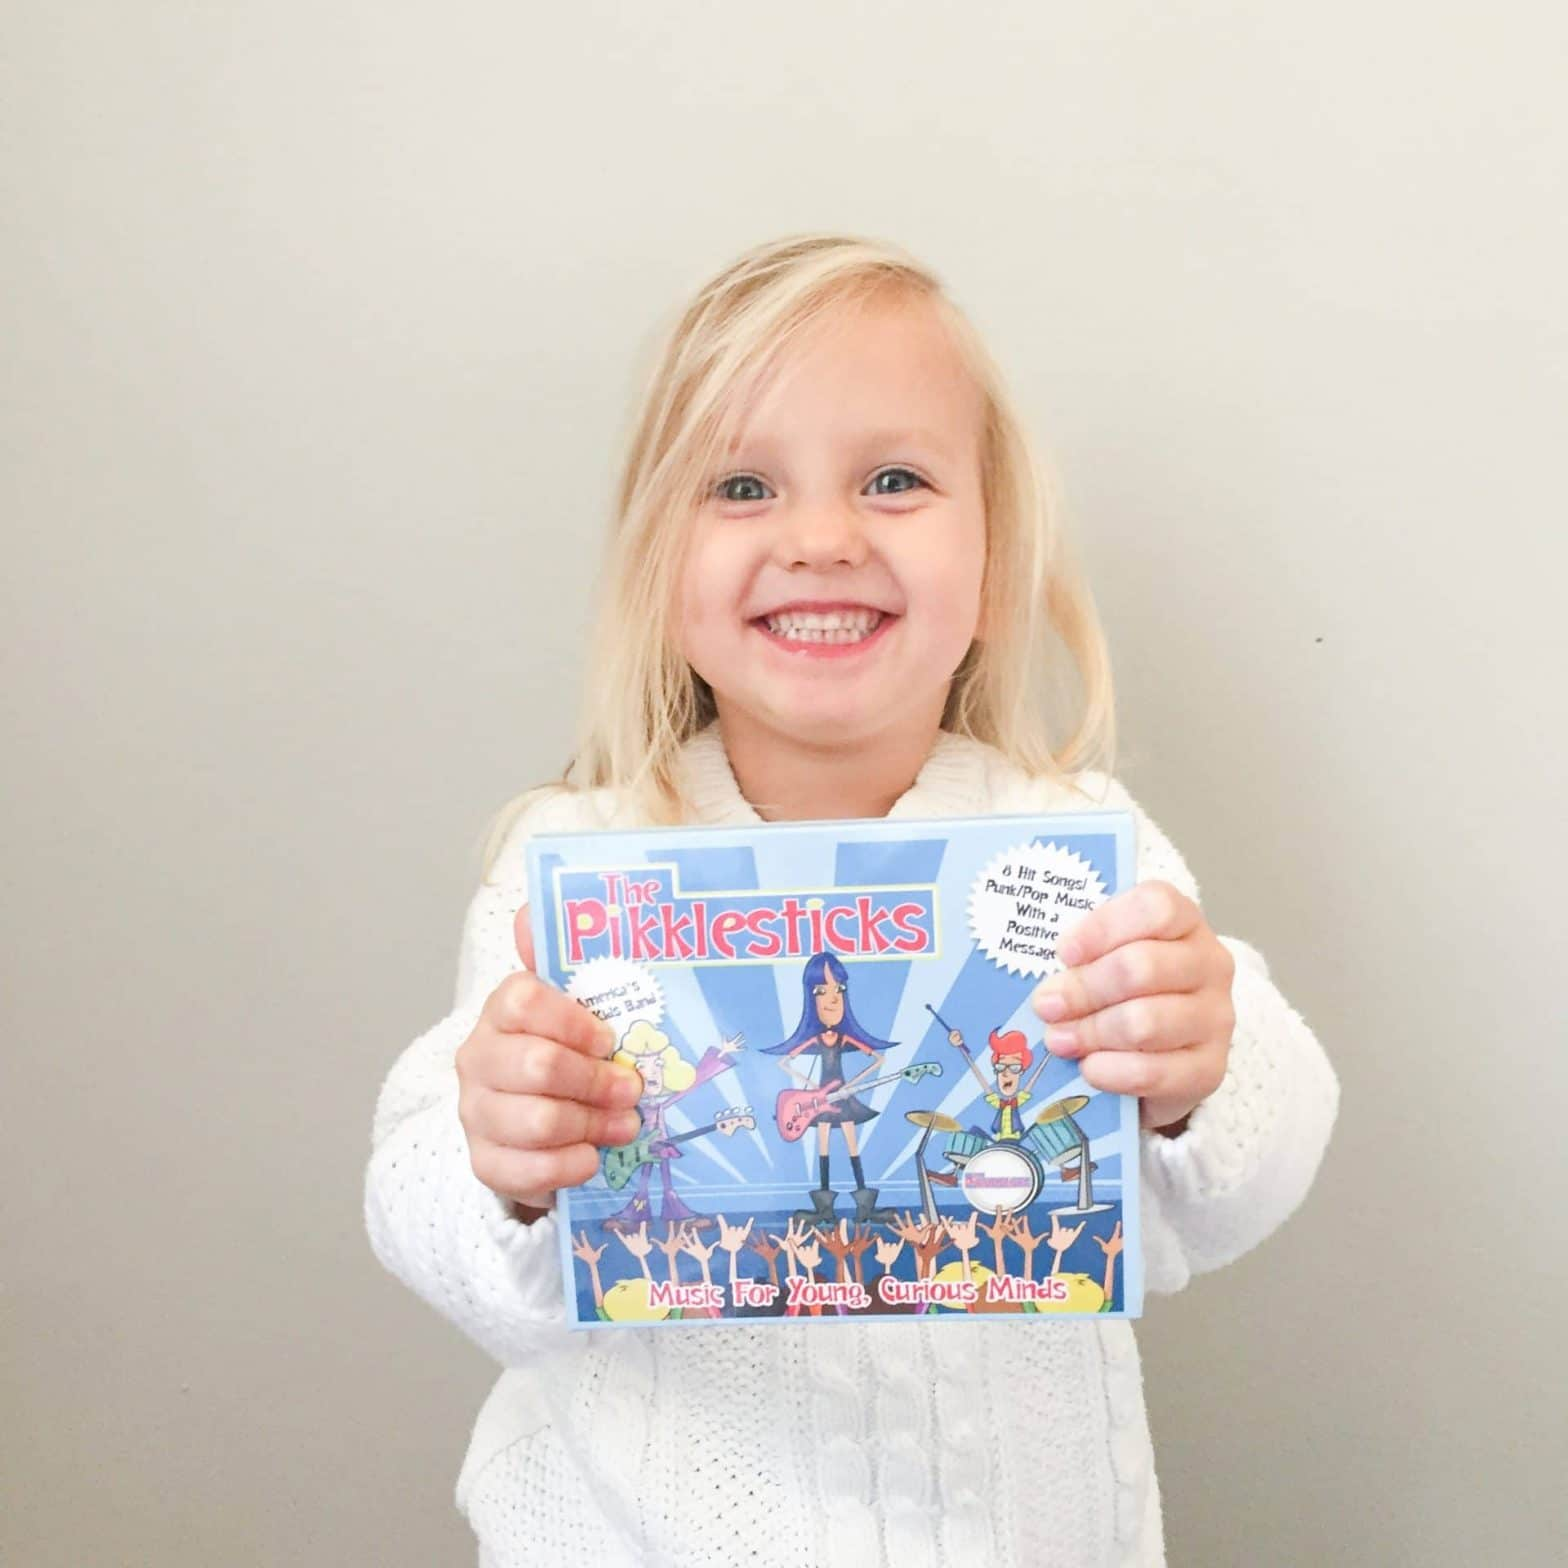 Win a Pikklesticks Kids' CD or Poster!